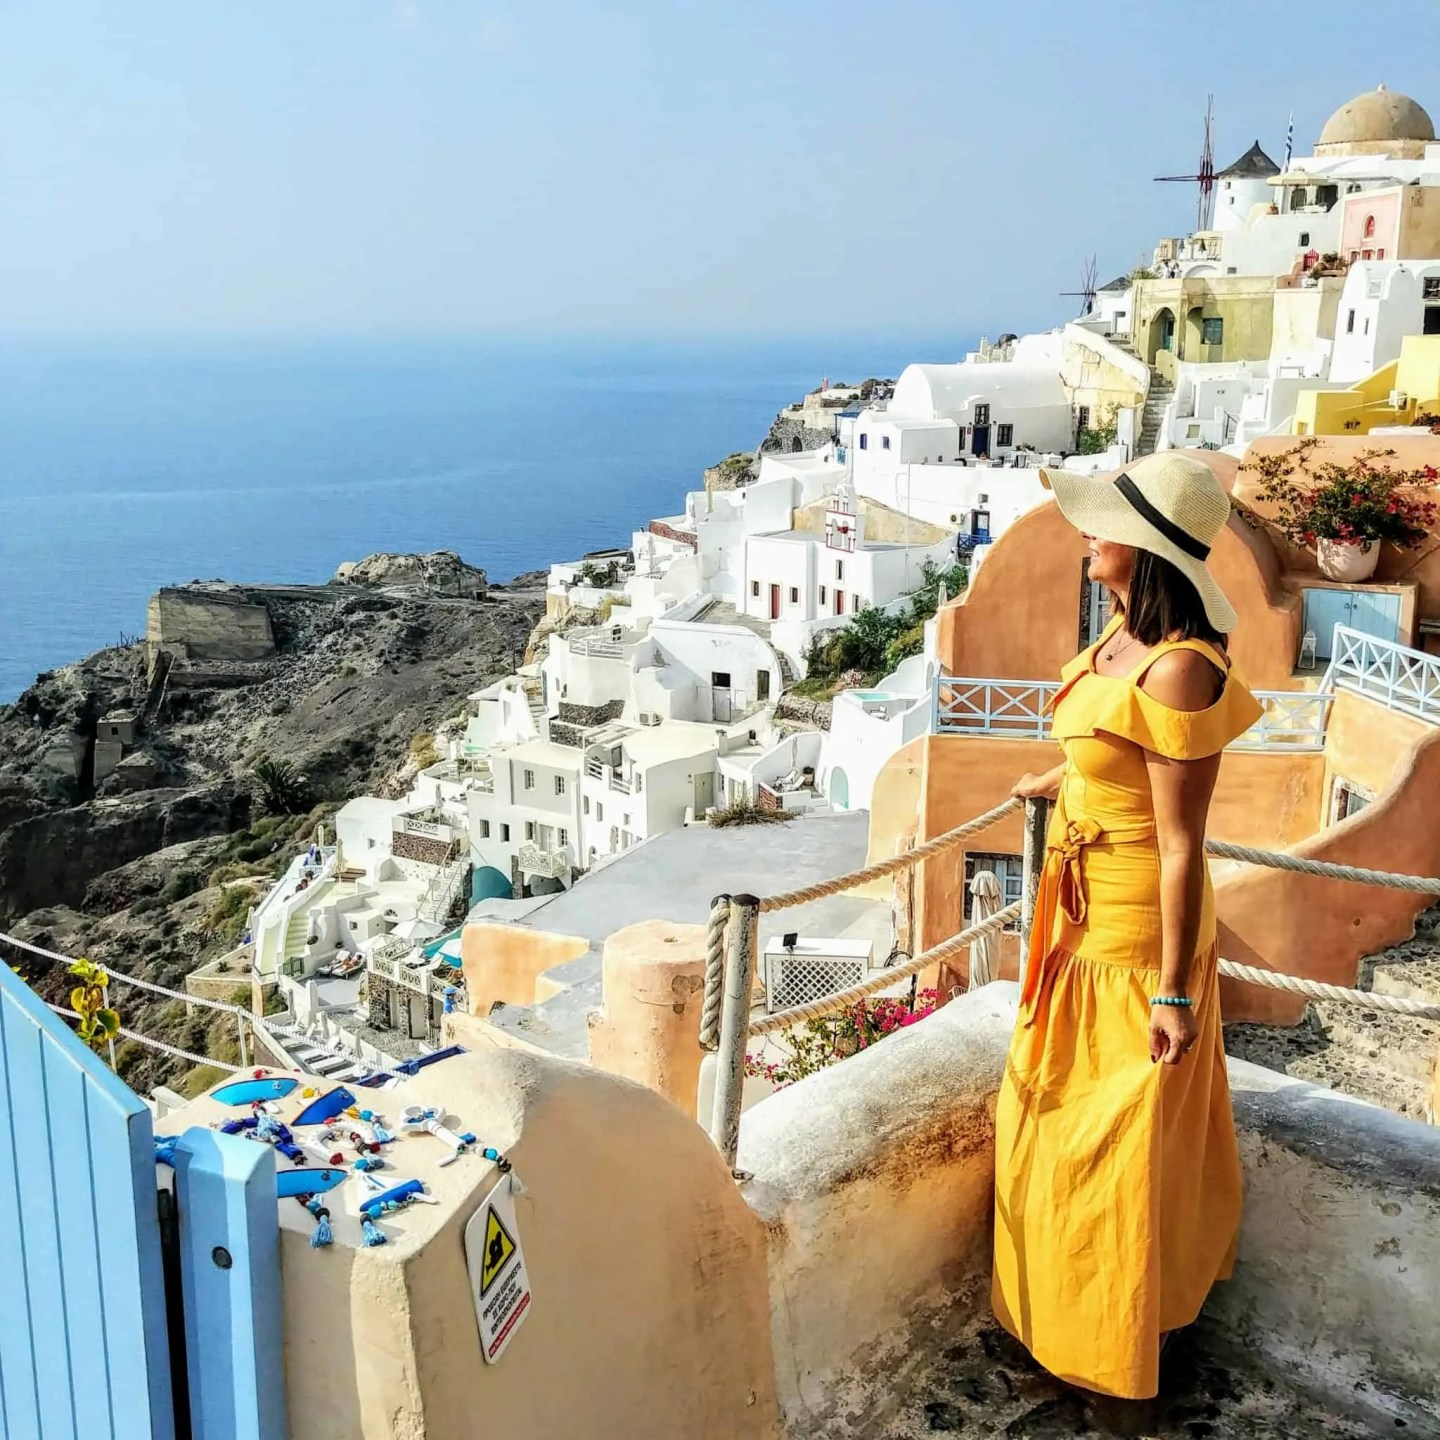 Best Way to Travel Greek Islands: 7 Day Norwegian Cruise from Venice